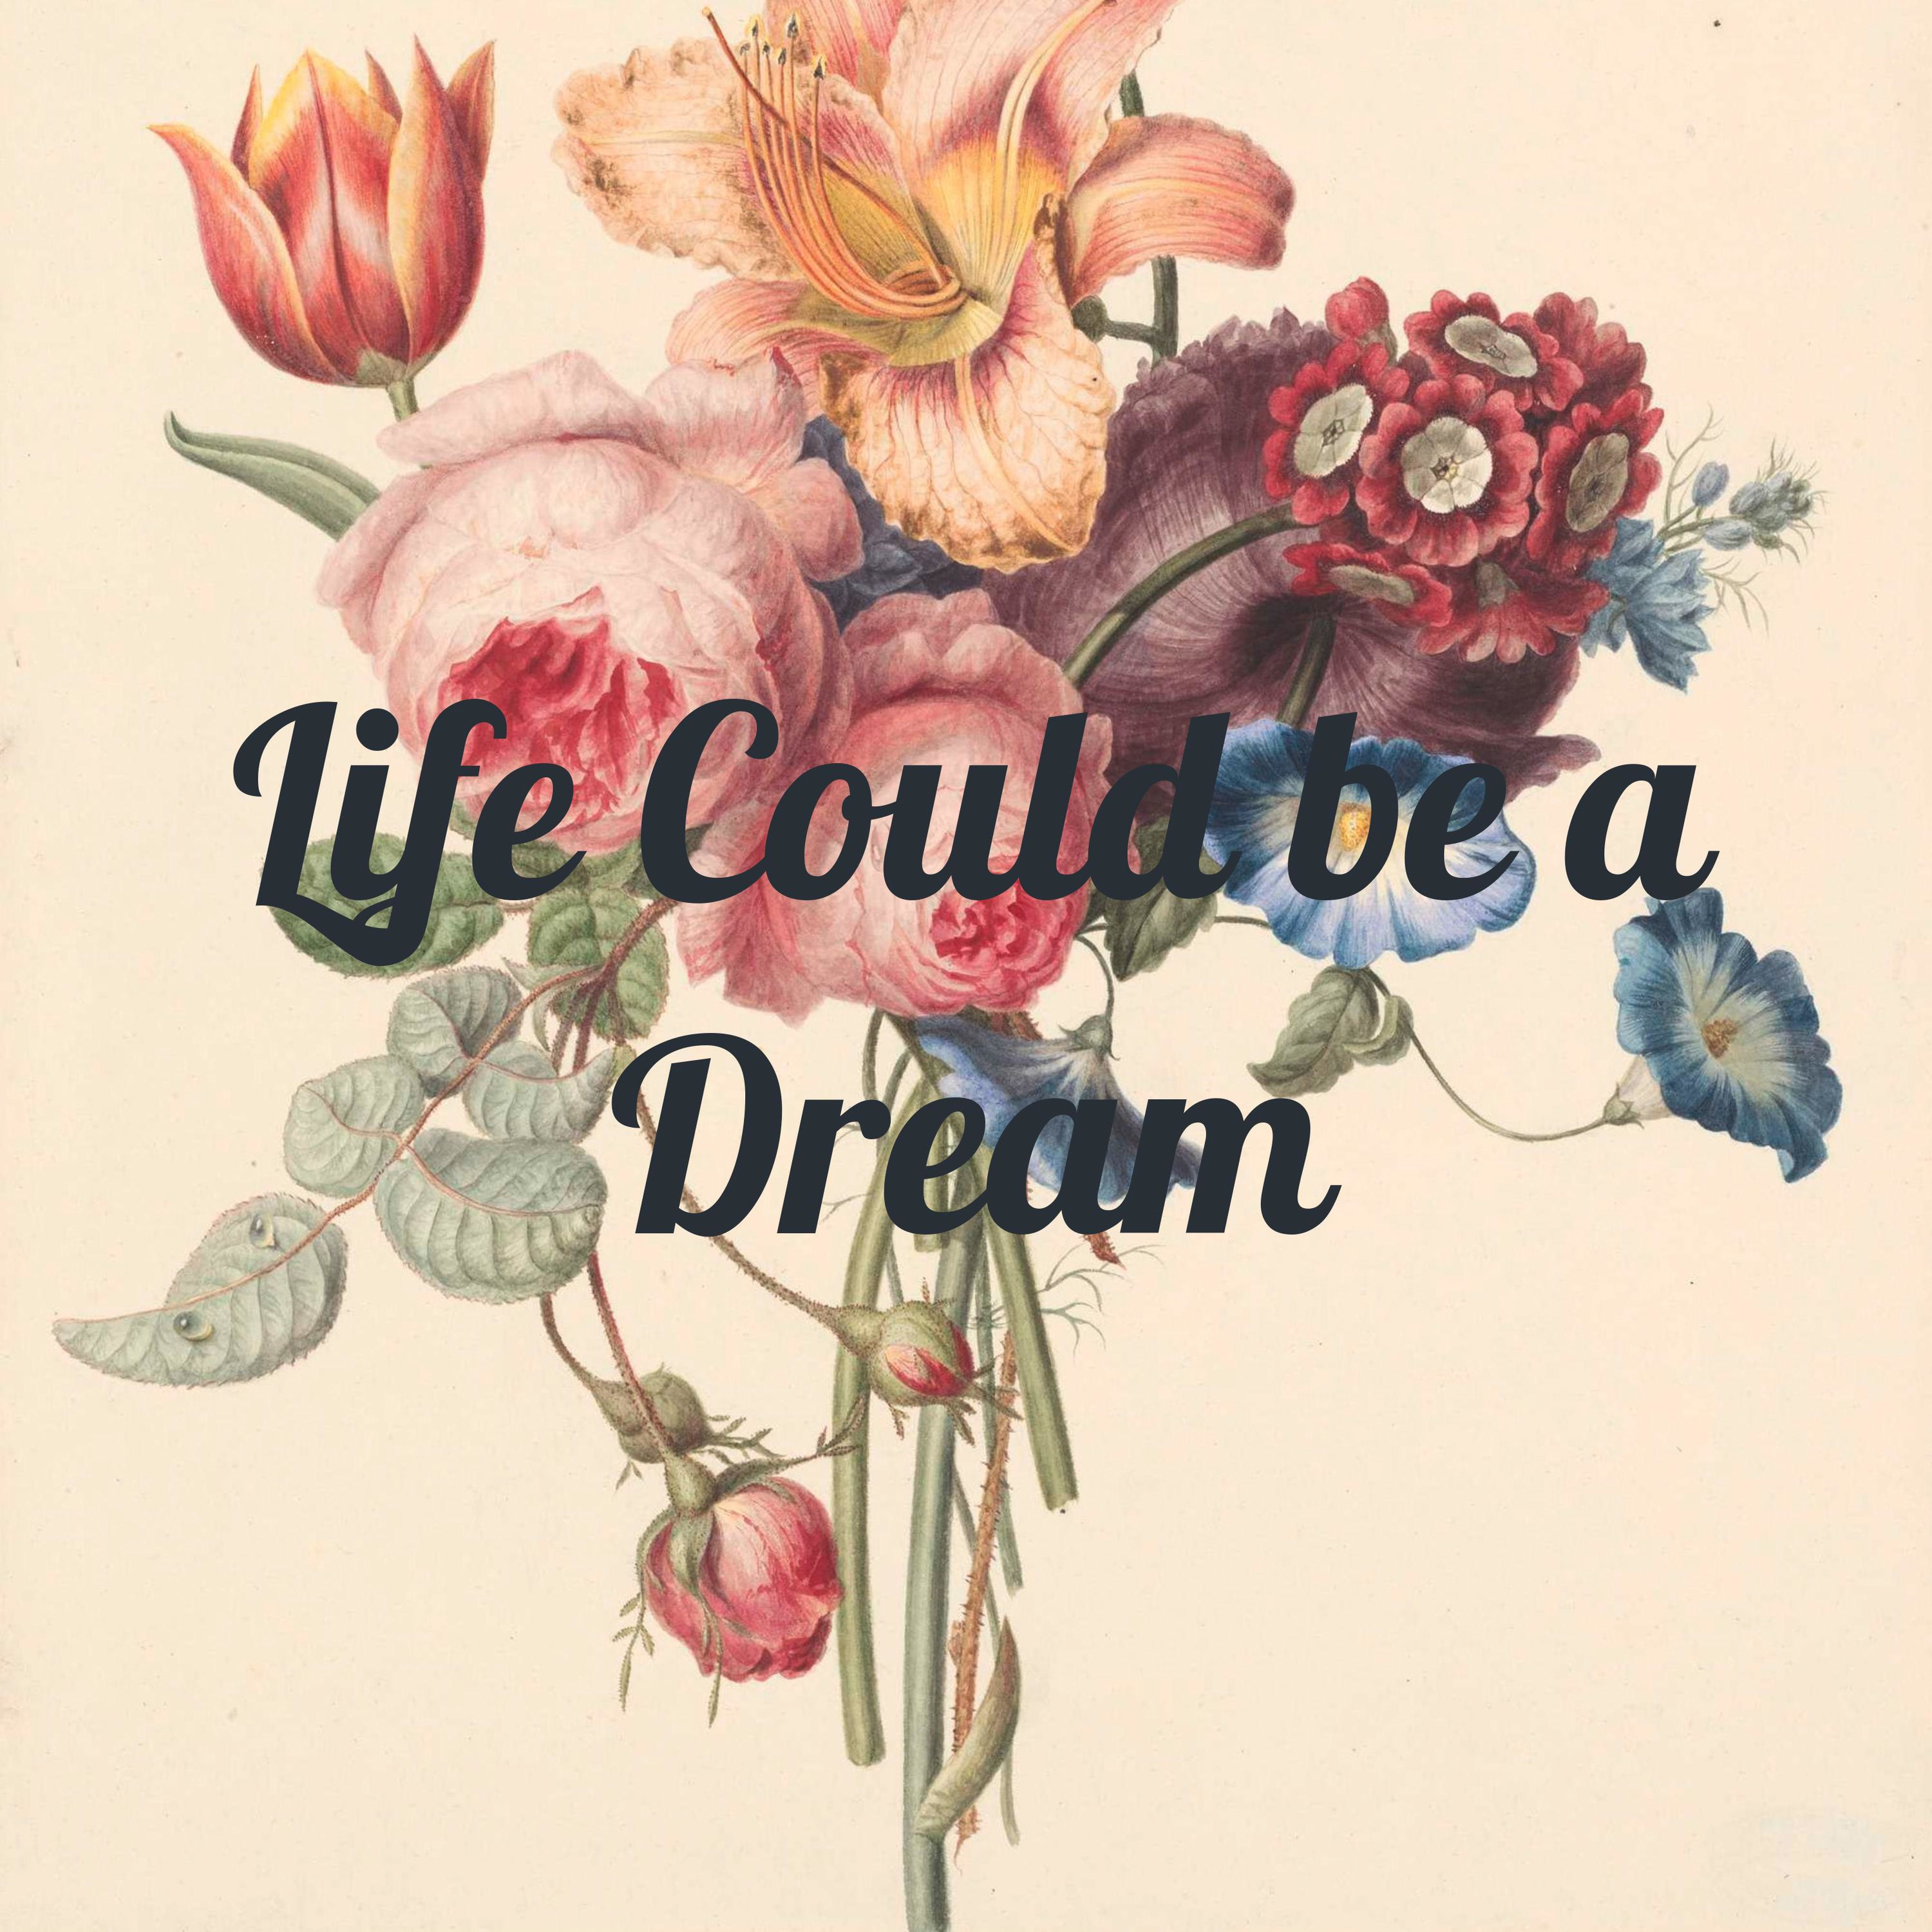 Life Could be a Dream